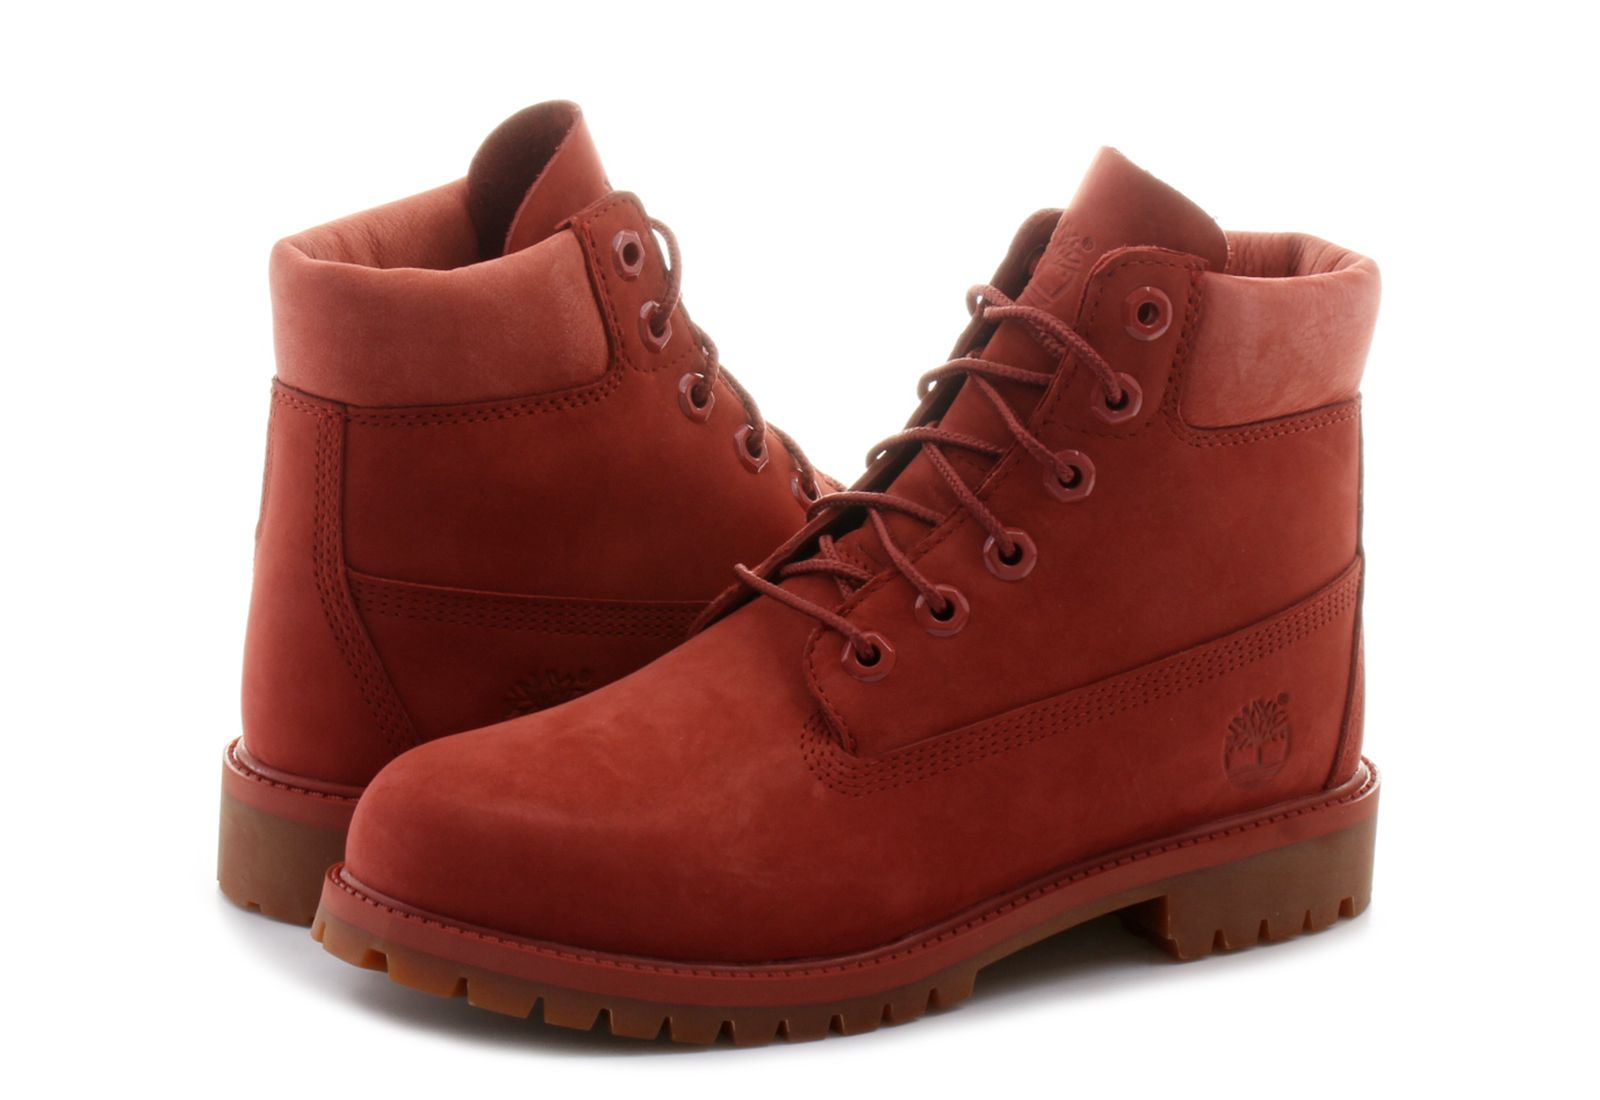 Timberland Topánky - 6 Inch Prem Boot - A1KPH-red - Tenisky ... ff49a619b17